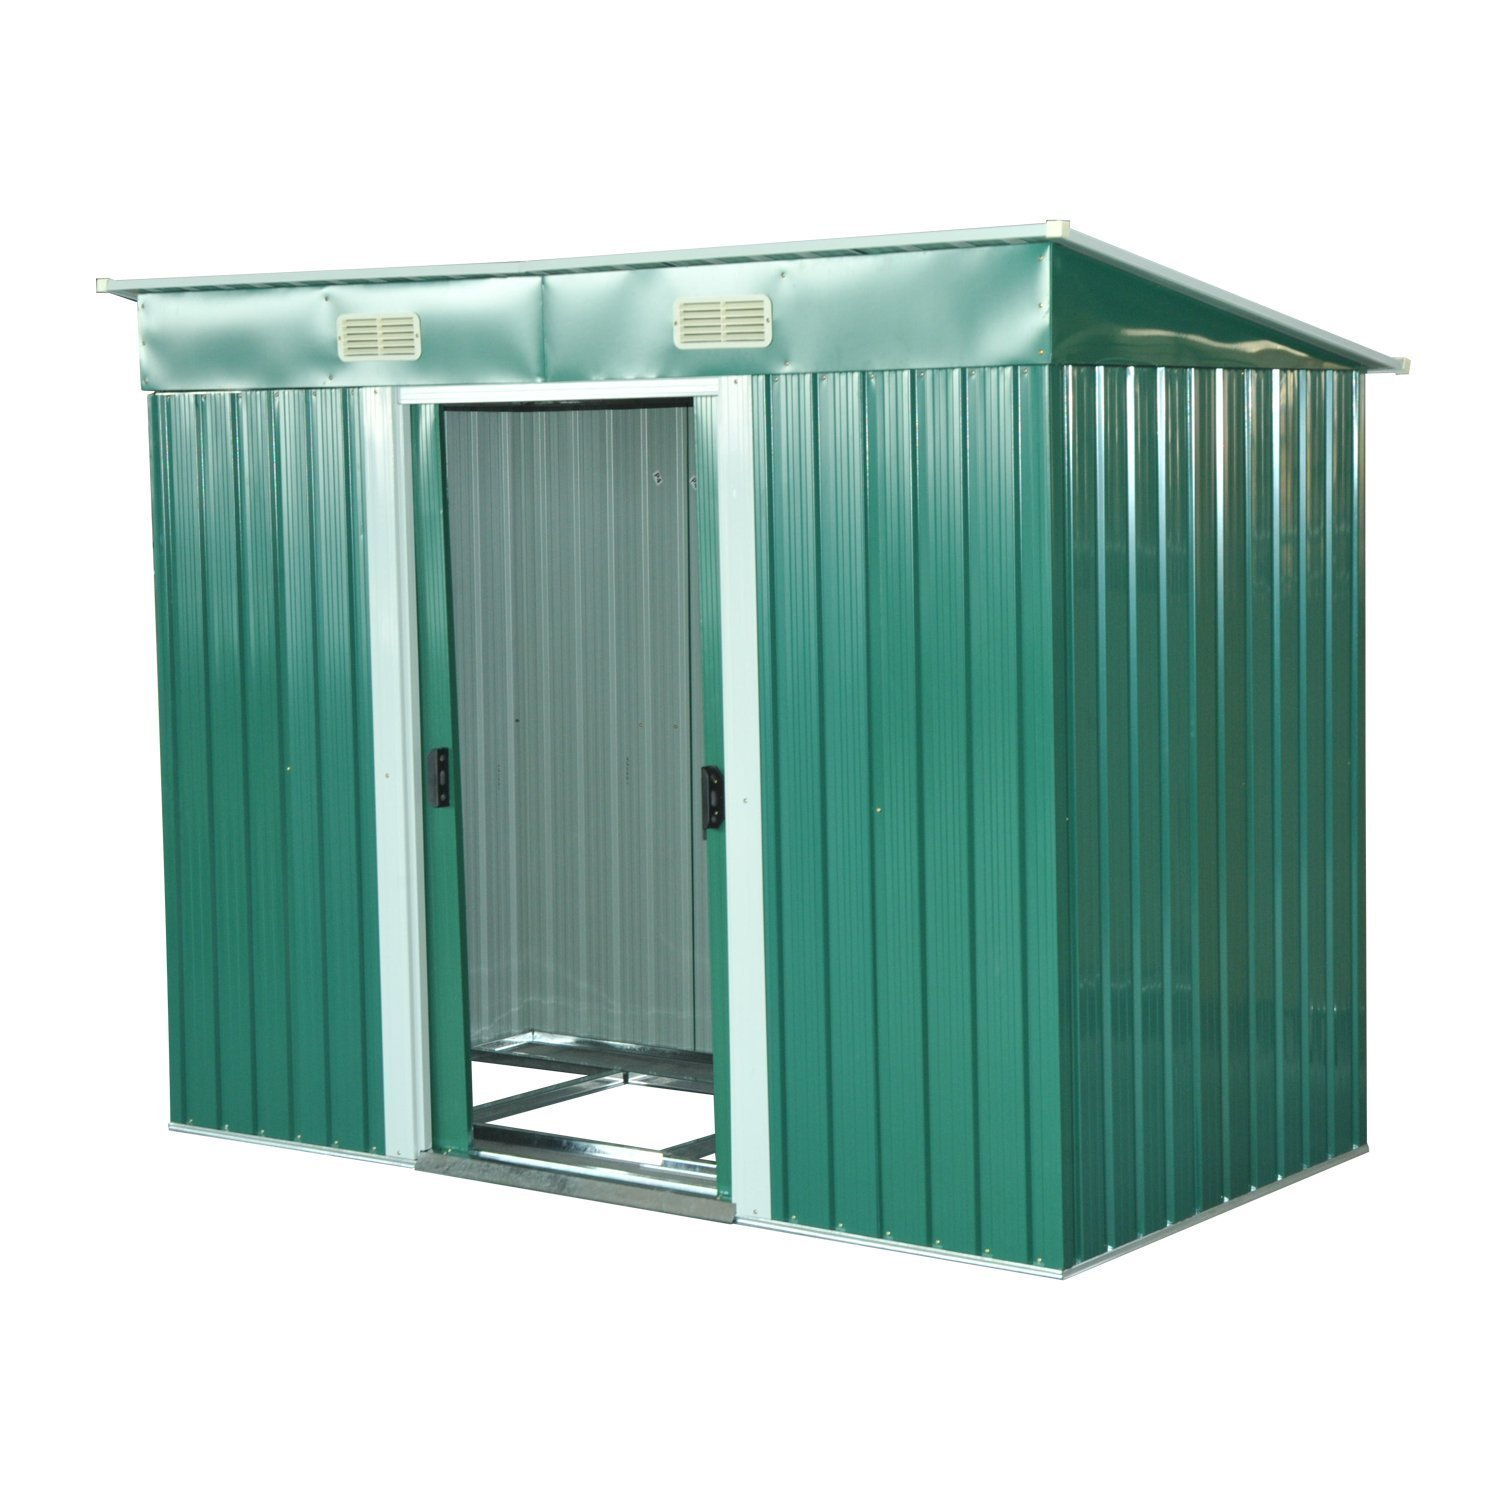 Outsunny Box Log Cabin Door Garden Tools Stainless Steel Sheet 237x119x181 Cm Green